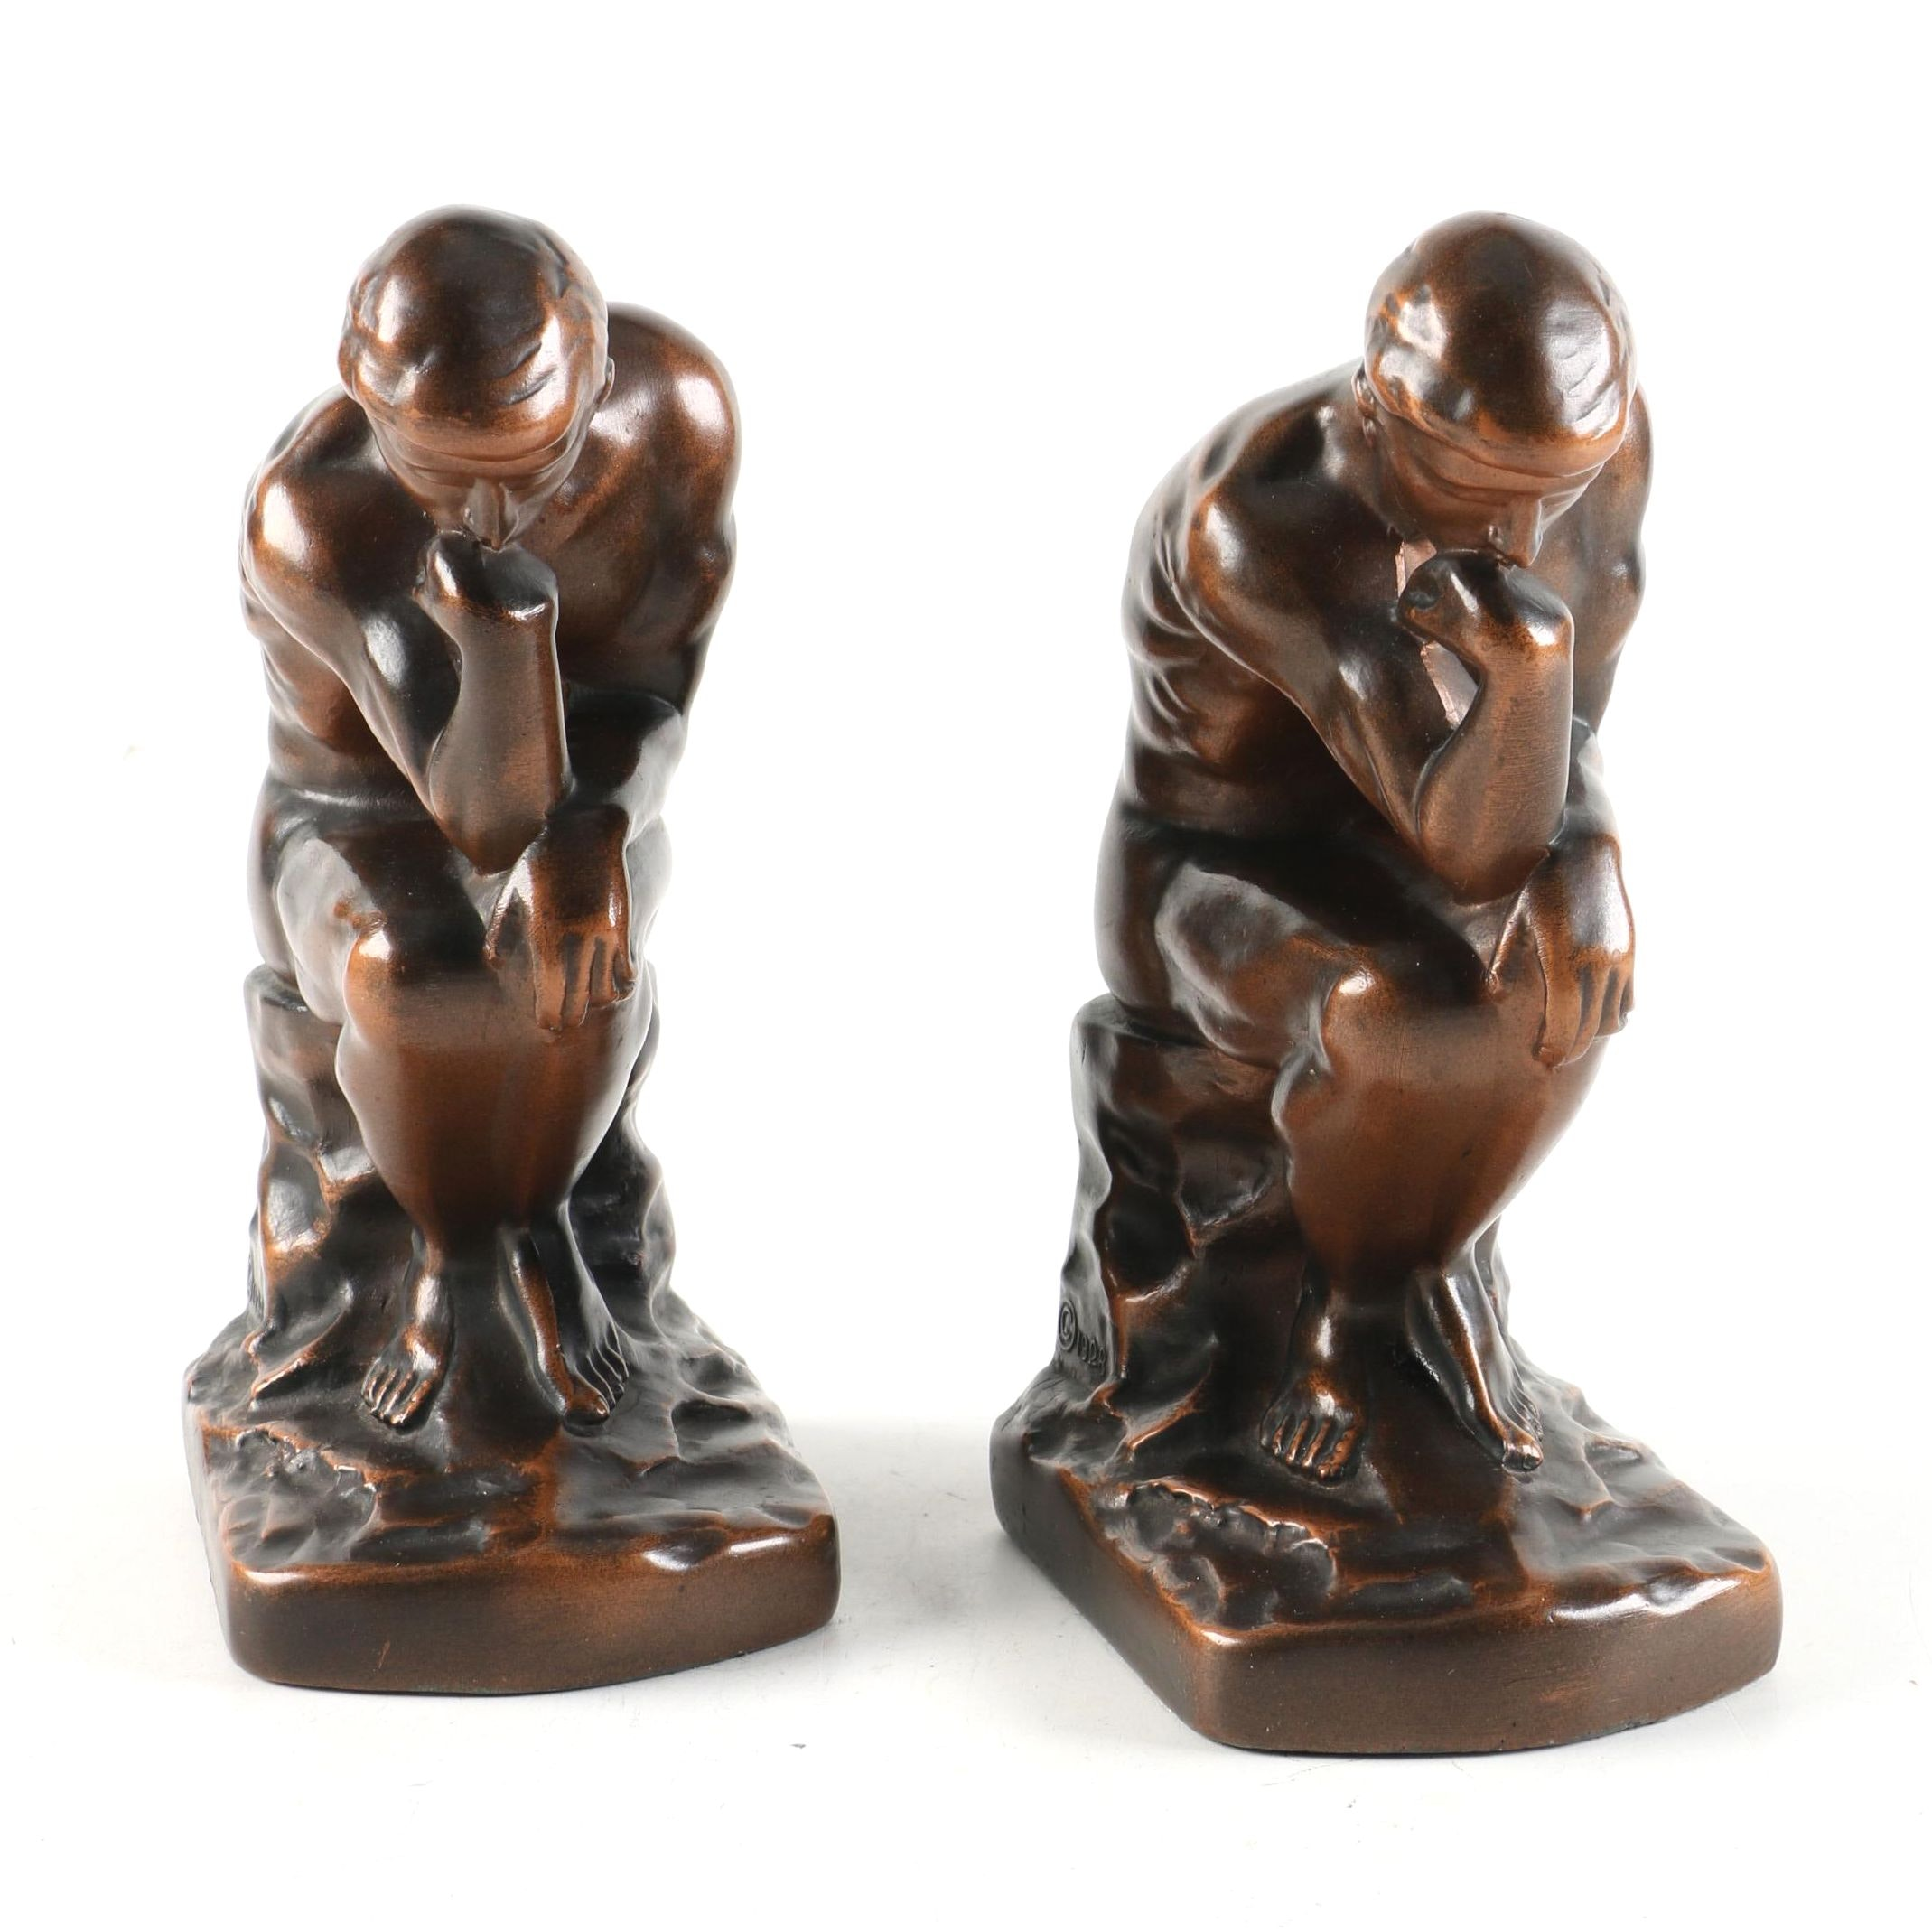 1929 Nuart Thinker Metal Bookends